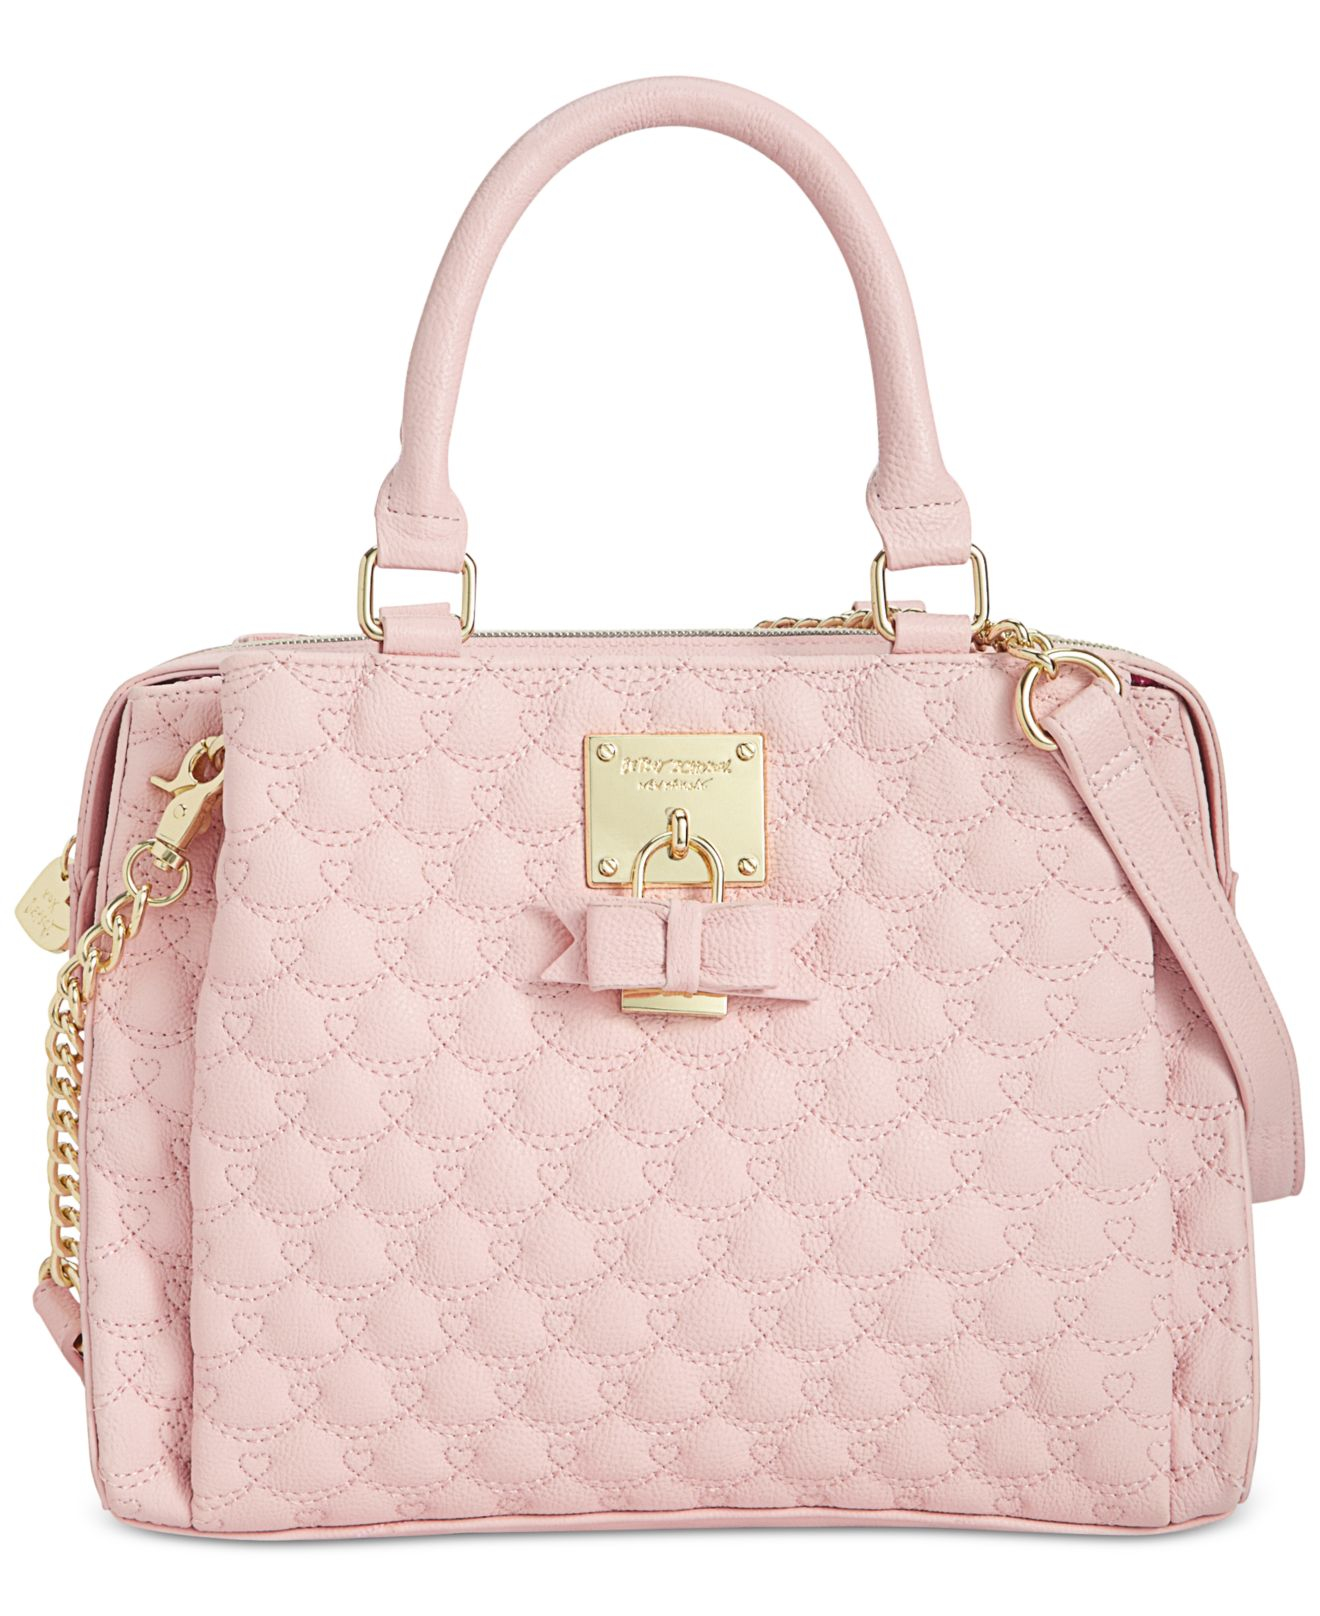 97cfd34ad4 Lyst - Betsey Johnson Triple Compartment Satchel in Pink